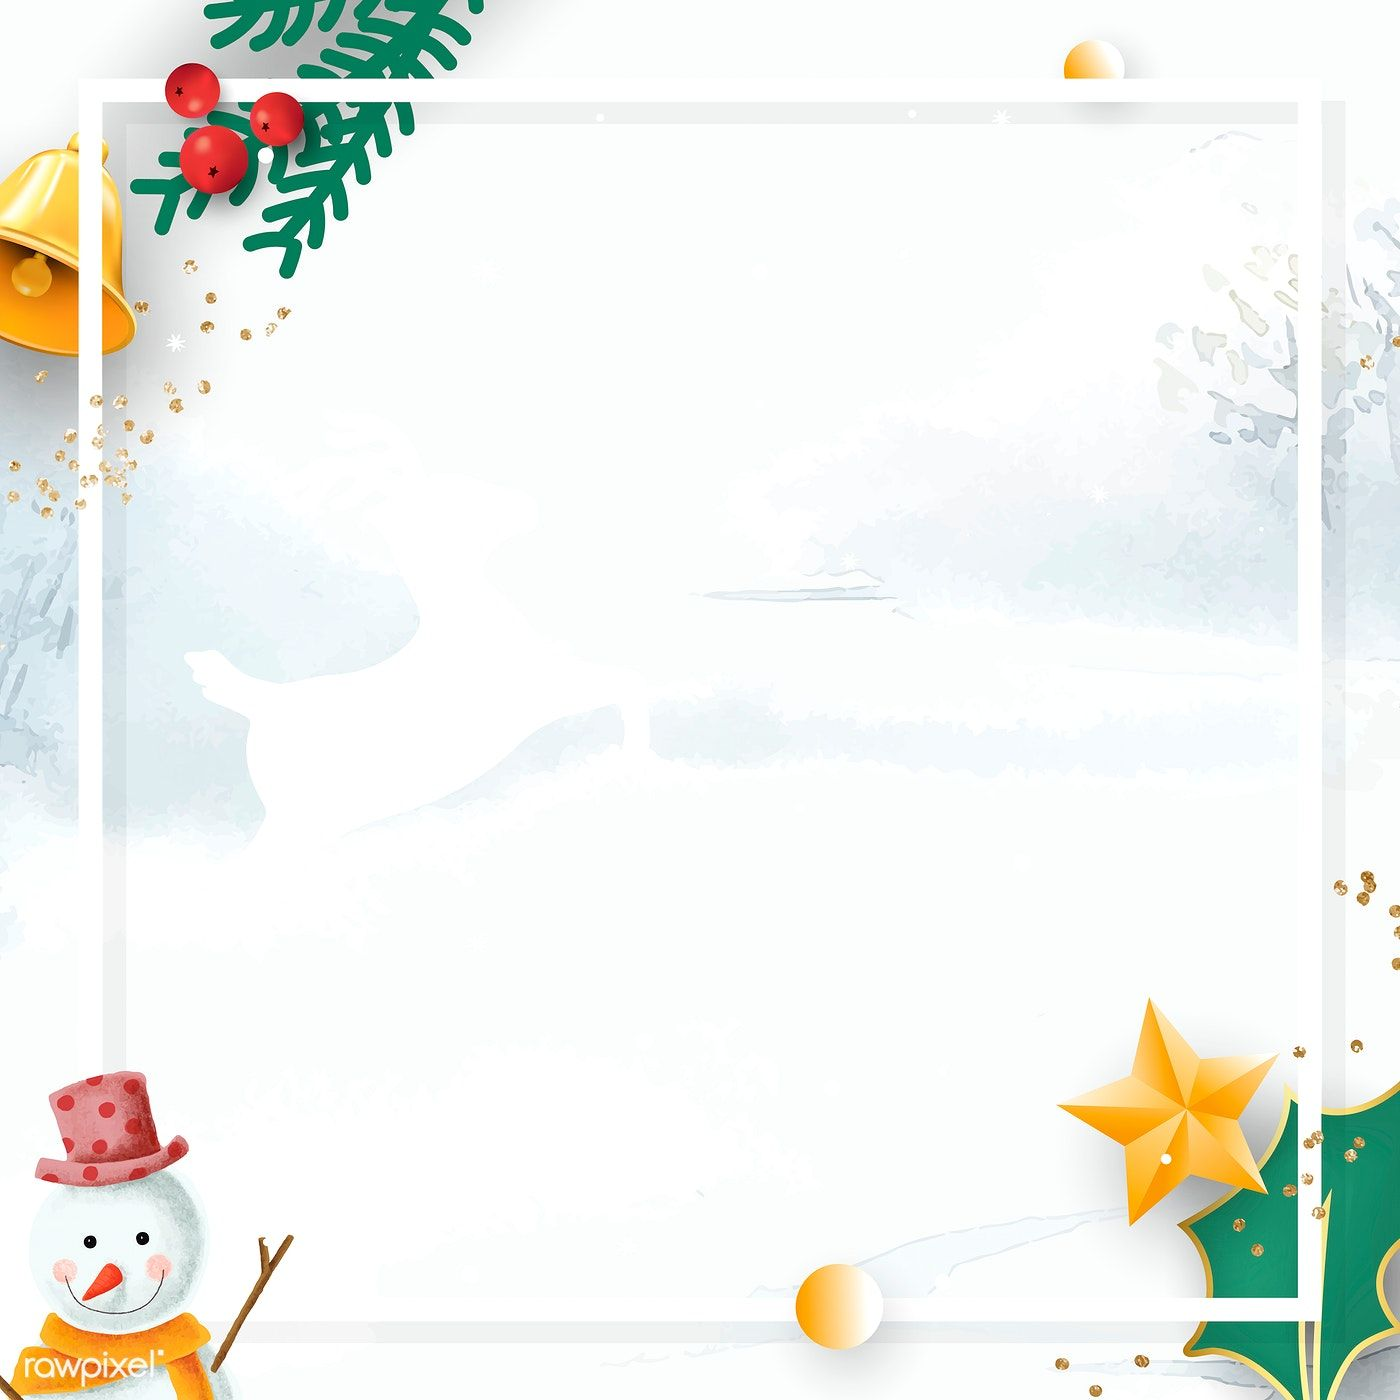 Download premium vector of Christmas frame on winter background mobile #winterbackground